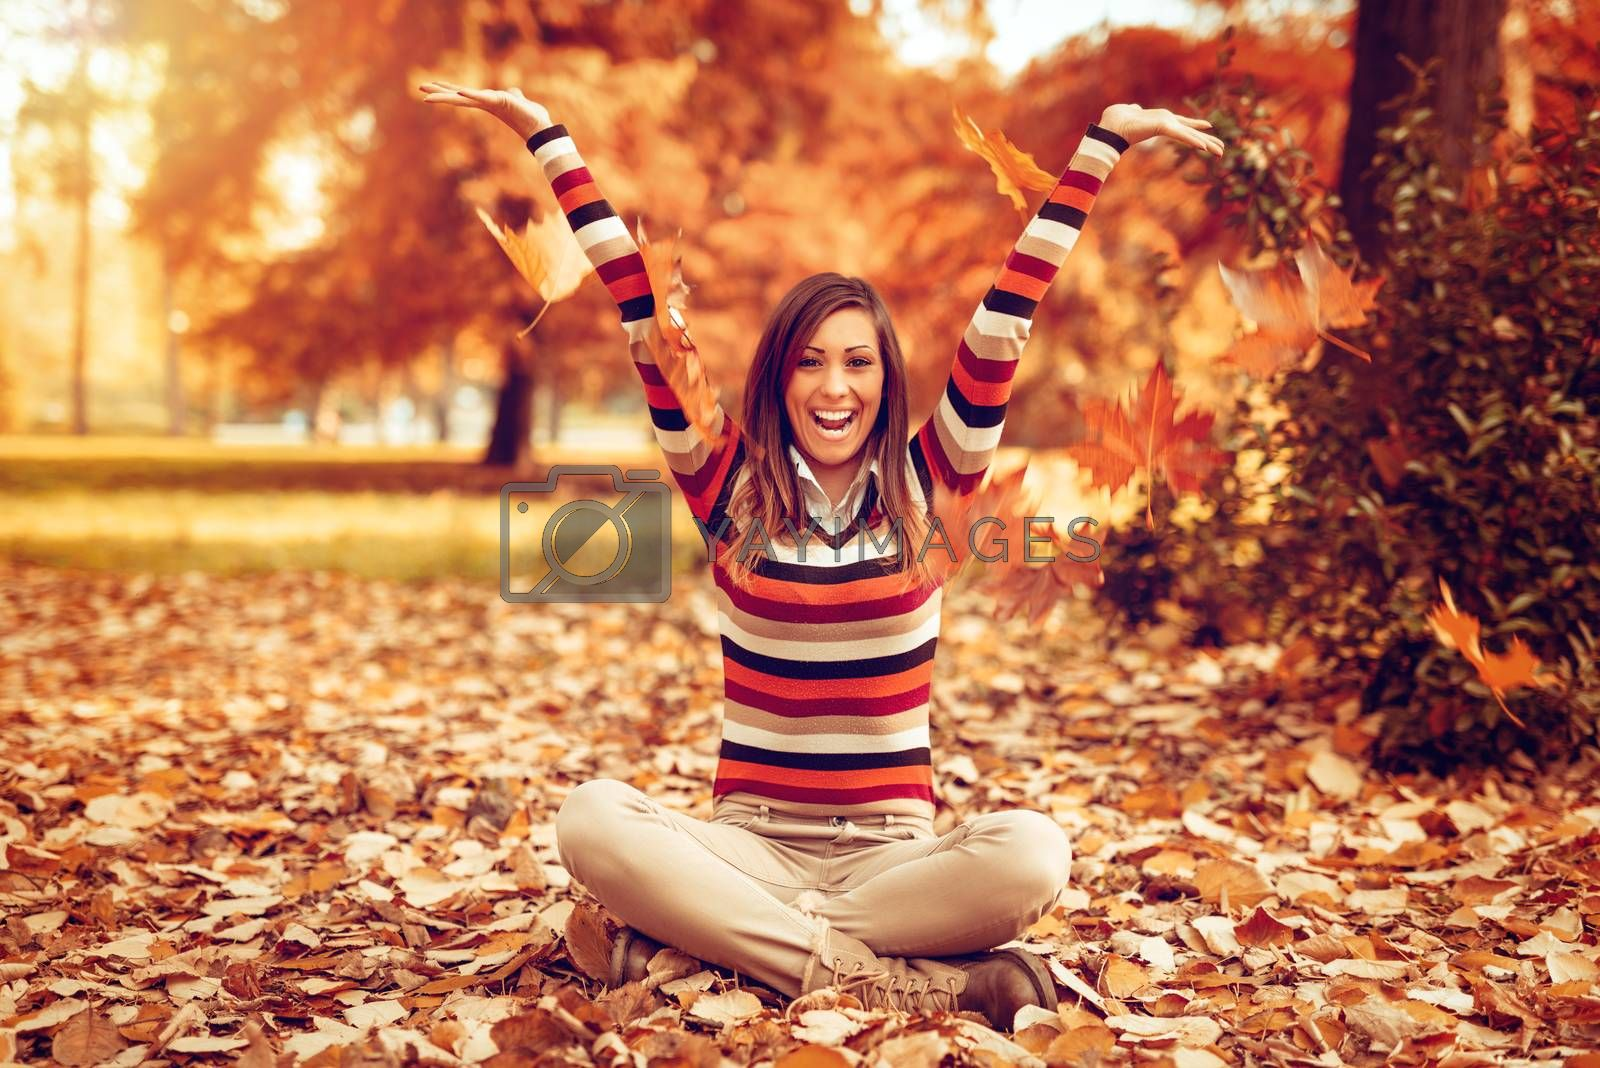 Cute young woman enjoying in sunny forest in autumn colors. She is sitting on the ground covered with leaves and having fun.